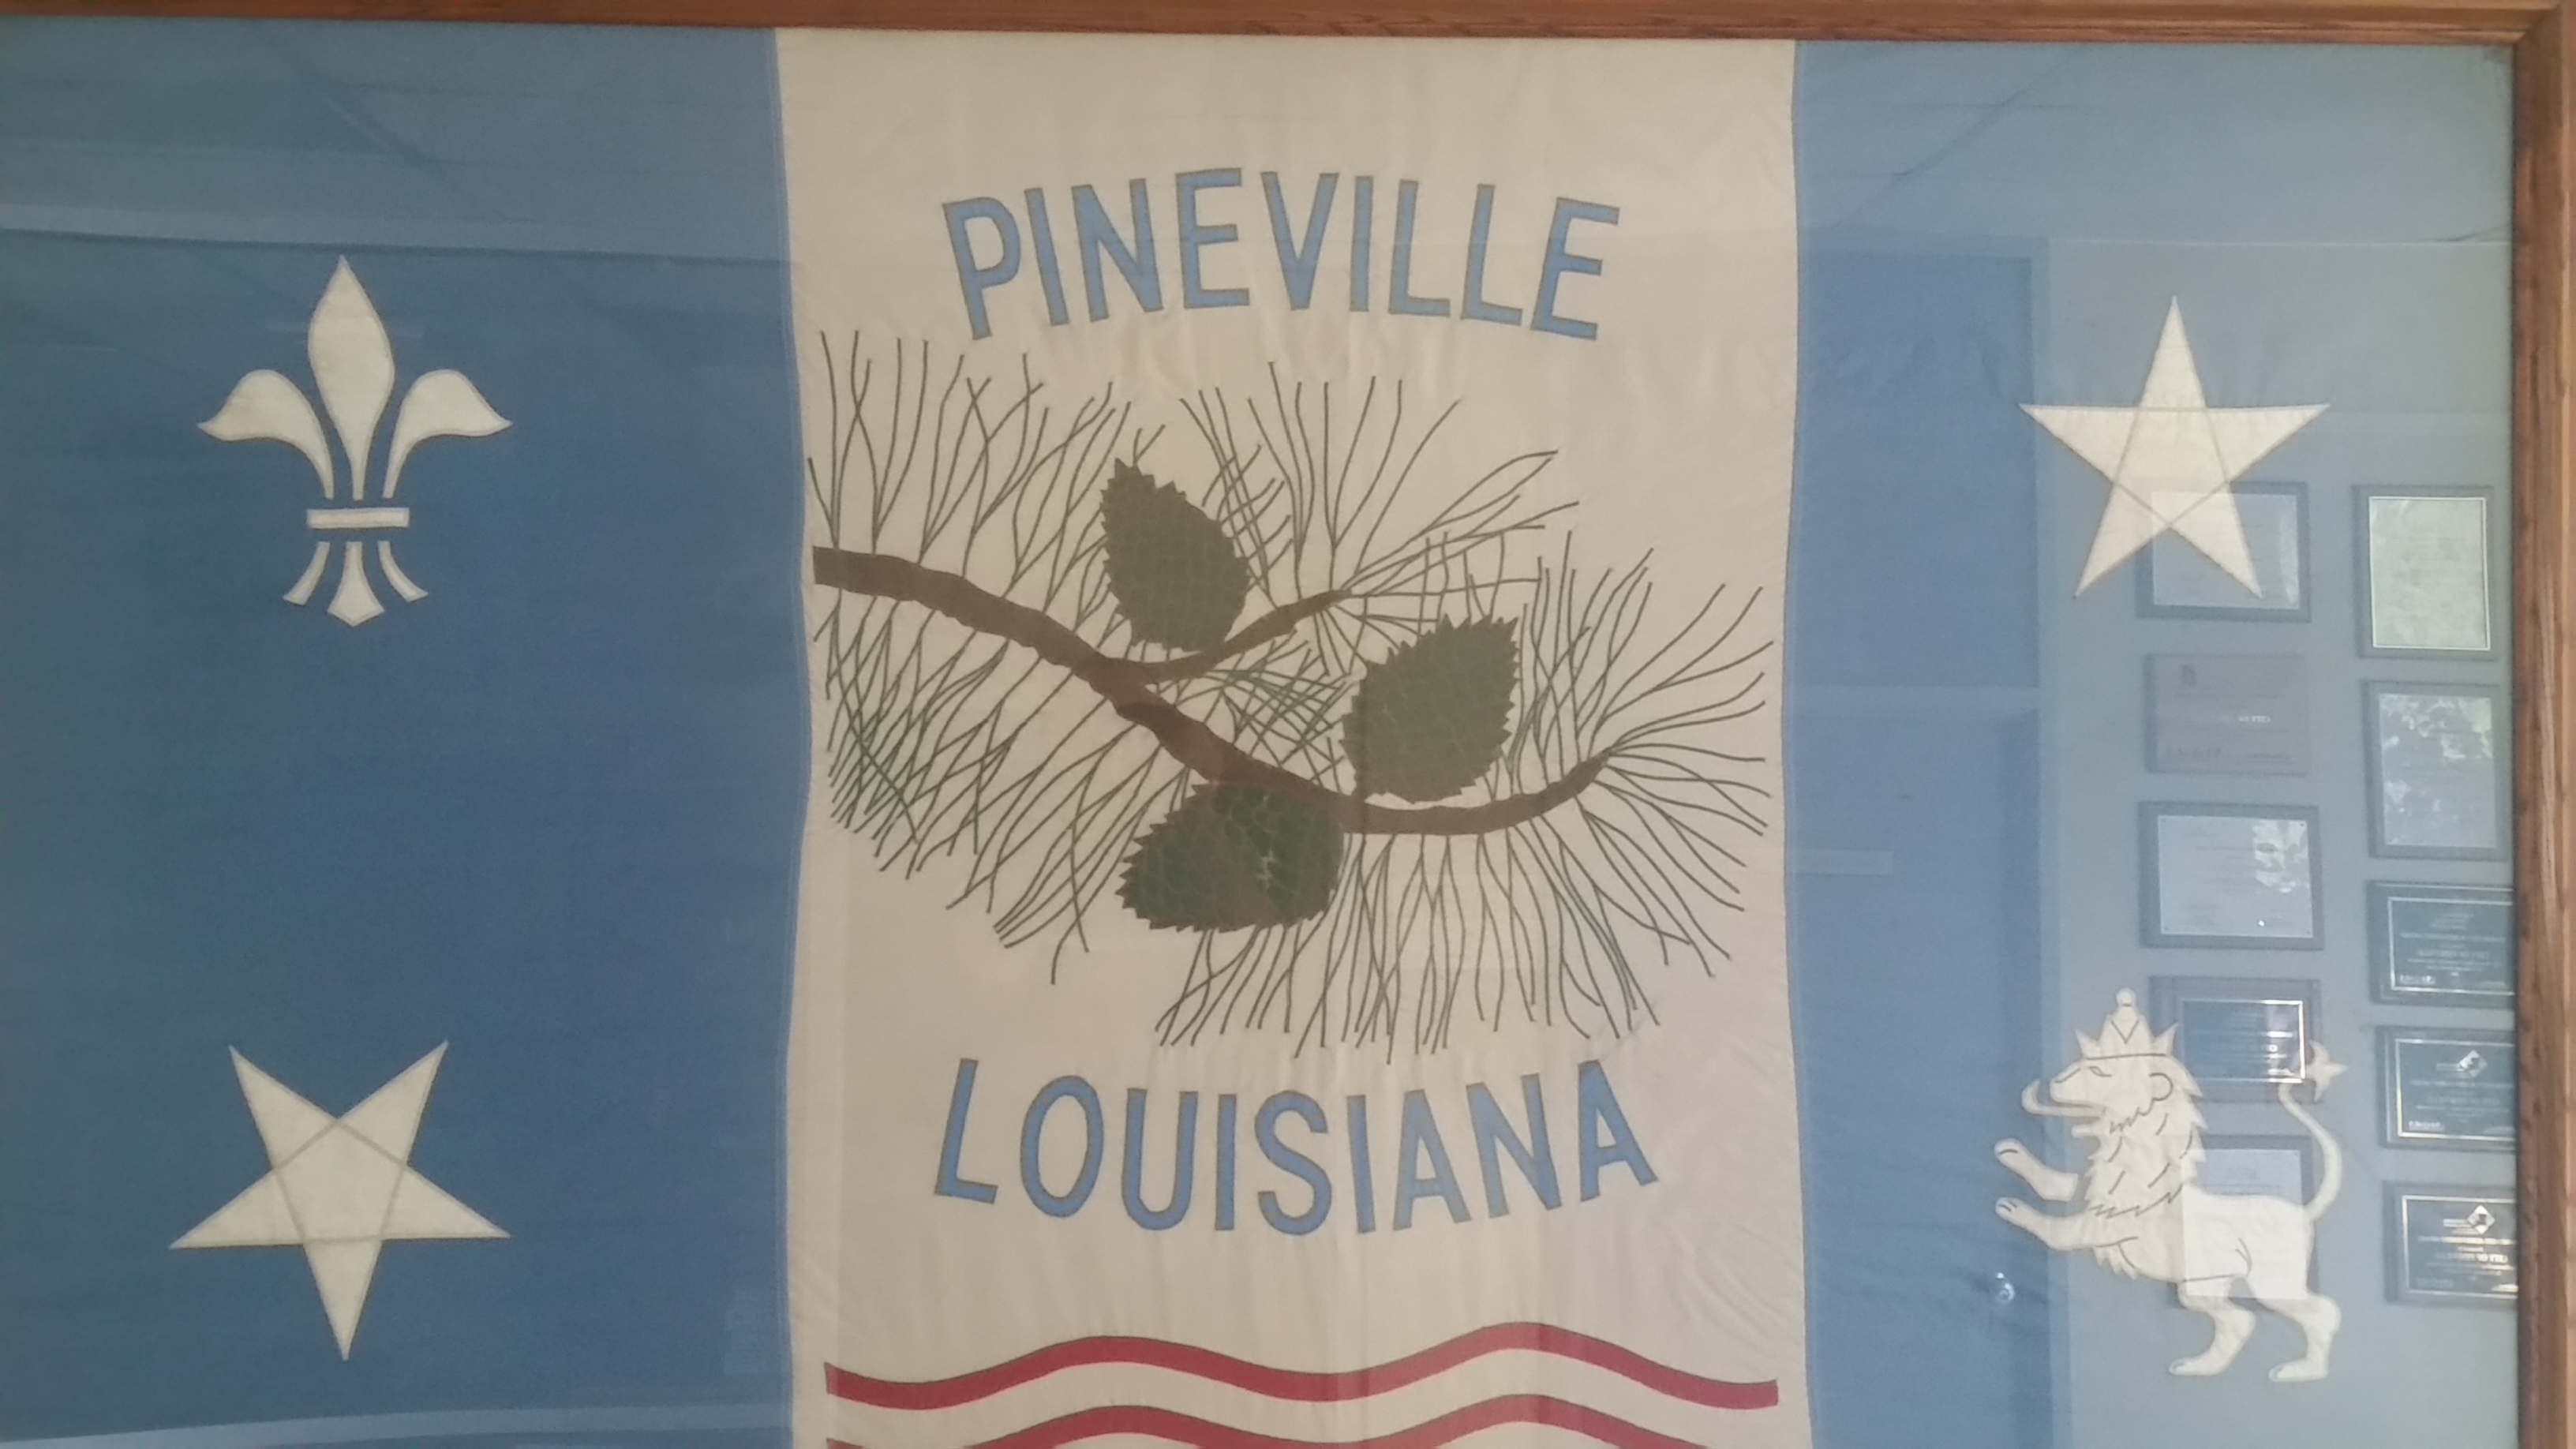 City olf Pineville Flag